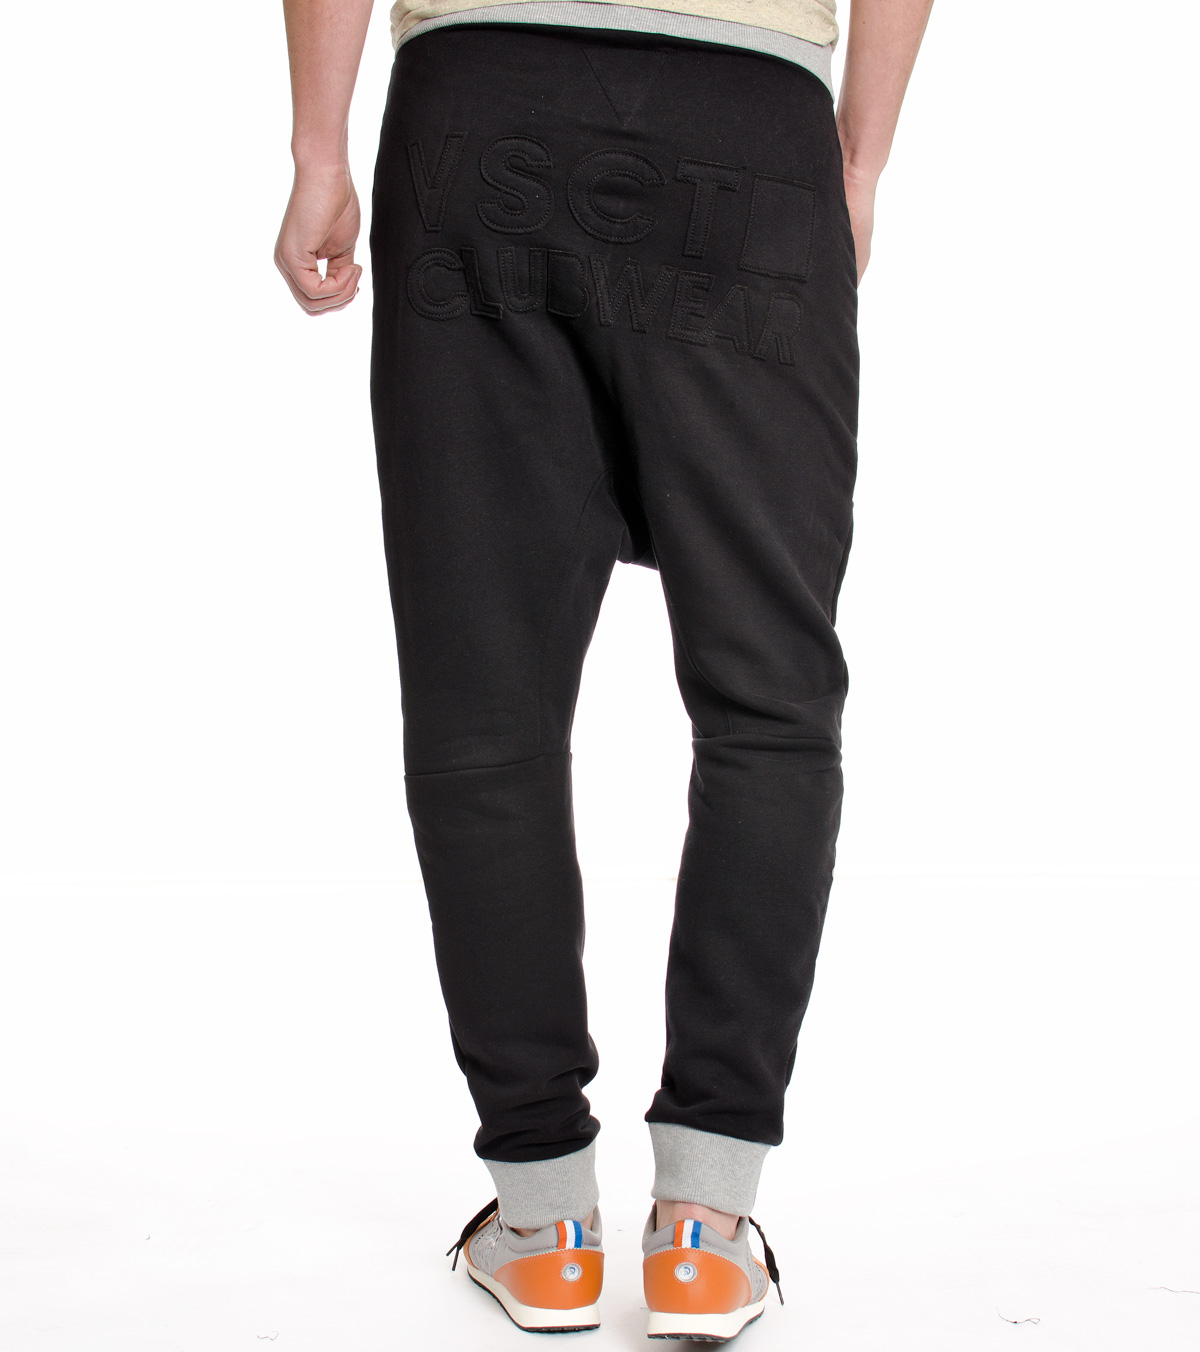 Men's Jogger Pants are stylish, versatile additions to your everyday wardrobe! Start any workout ensemble with Tek Gear joggers, which provide comfort and freedom of movement. Men's jogger sweatpants are ideal for any occasion.